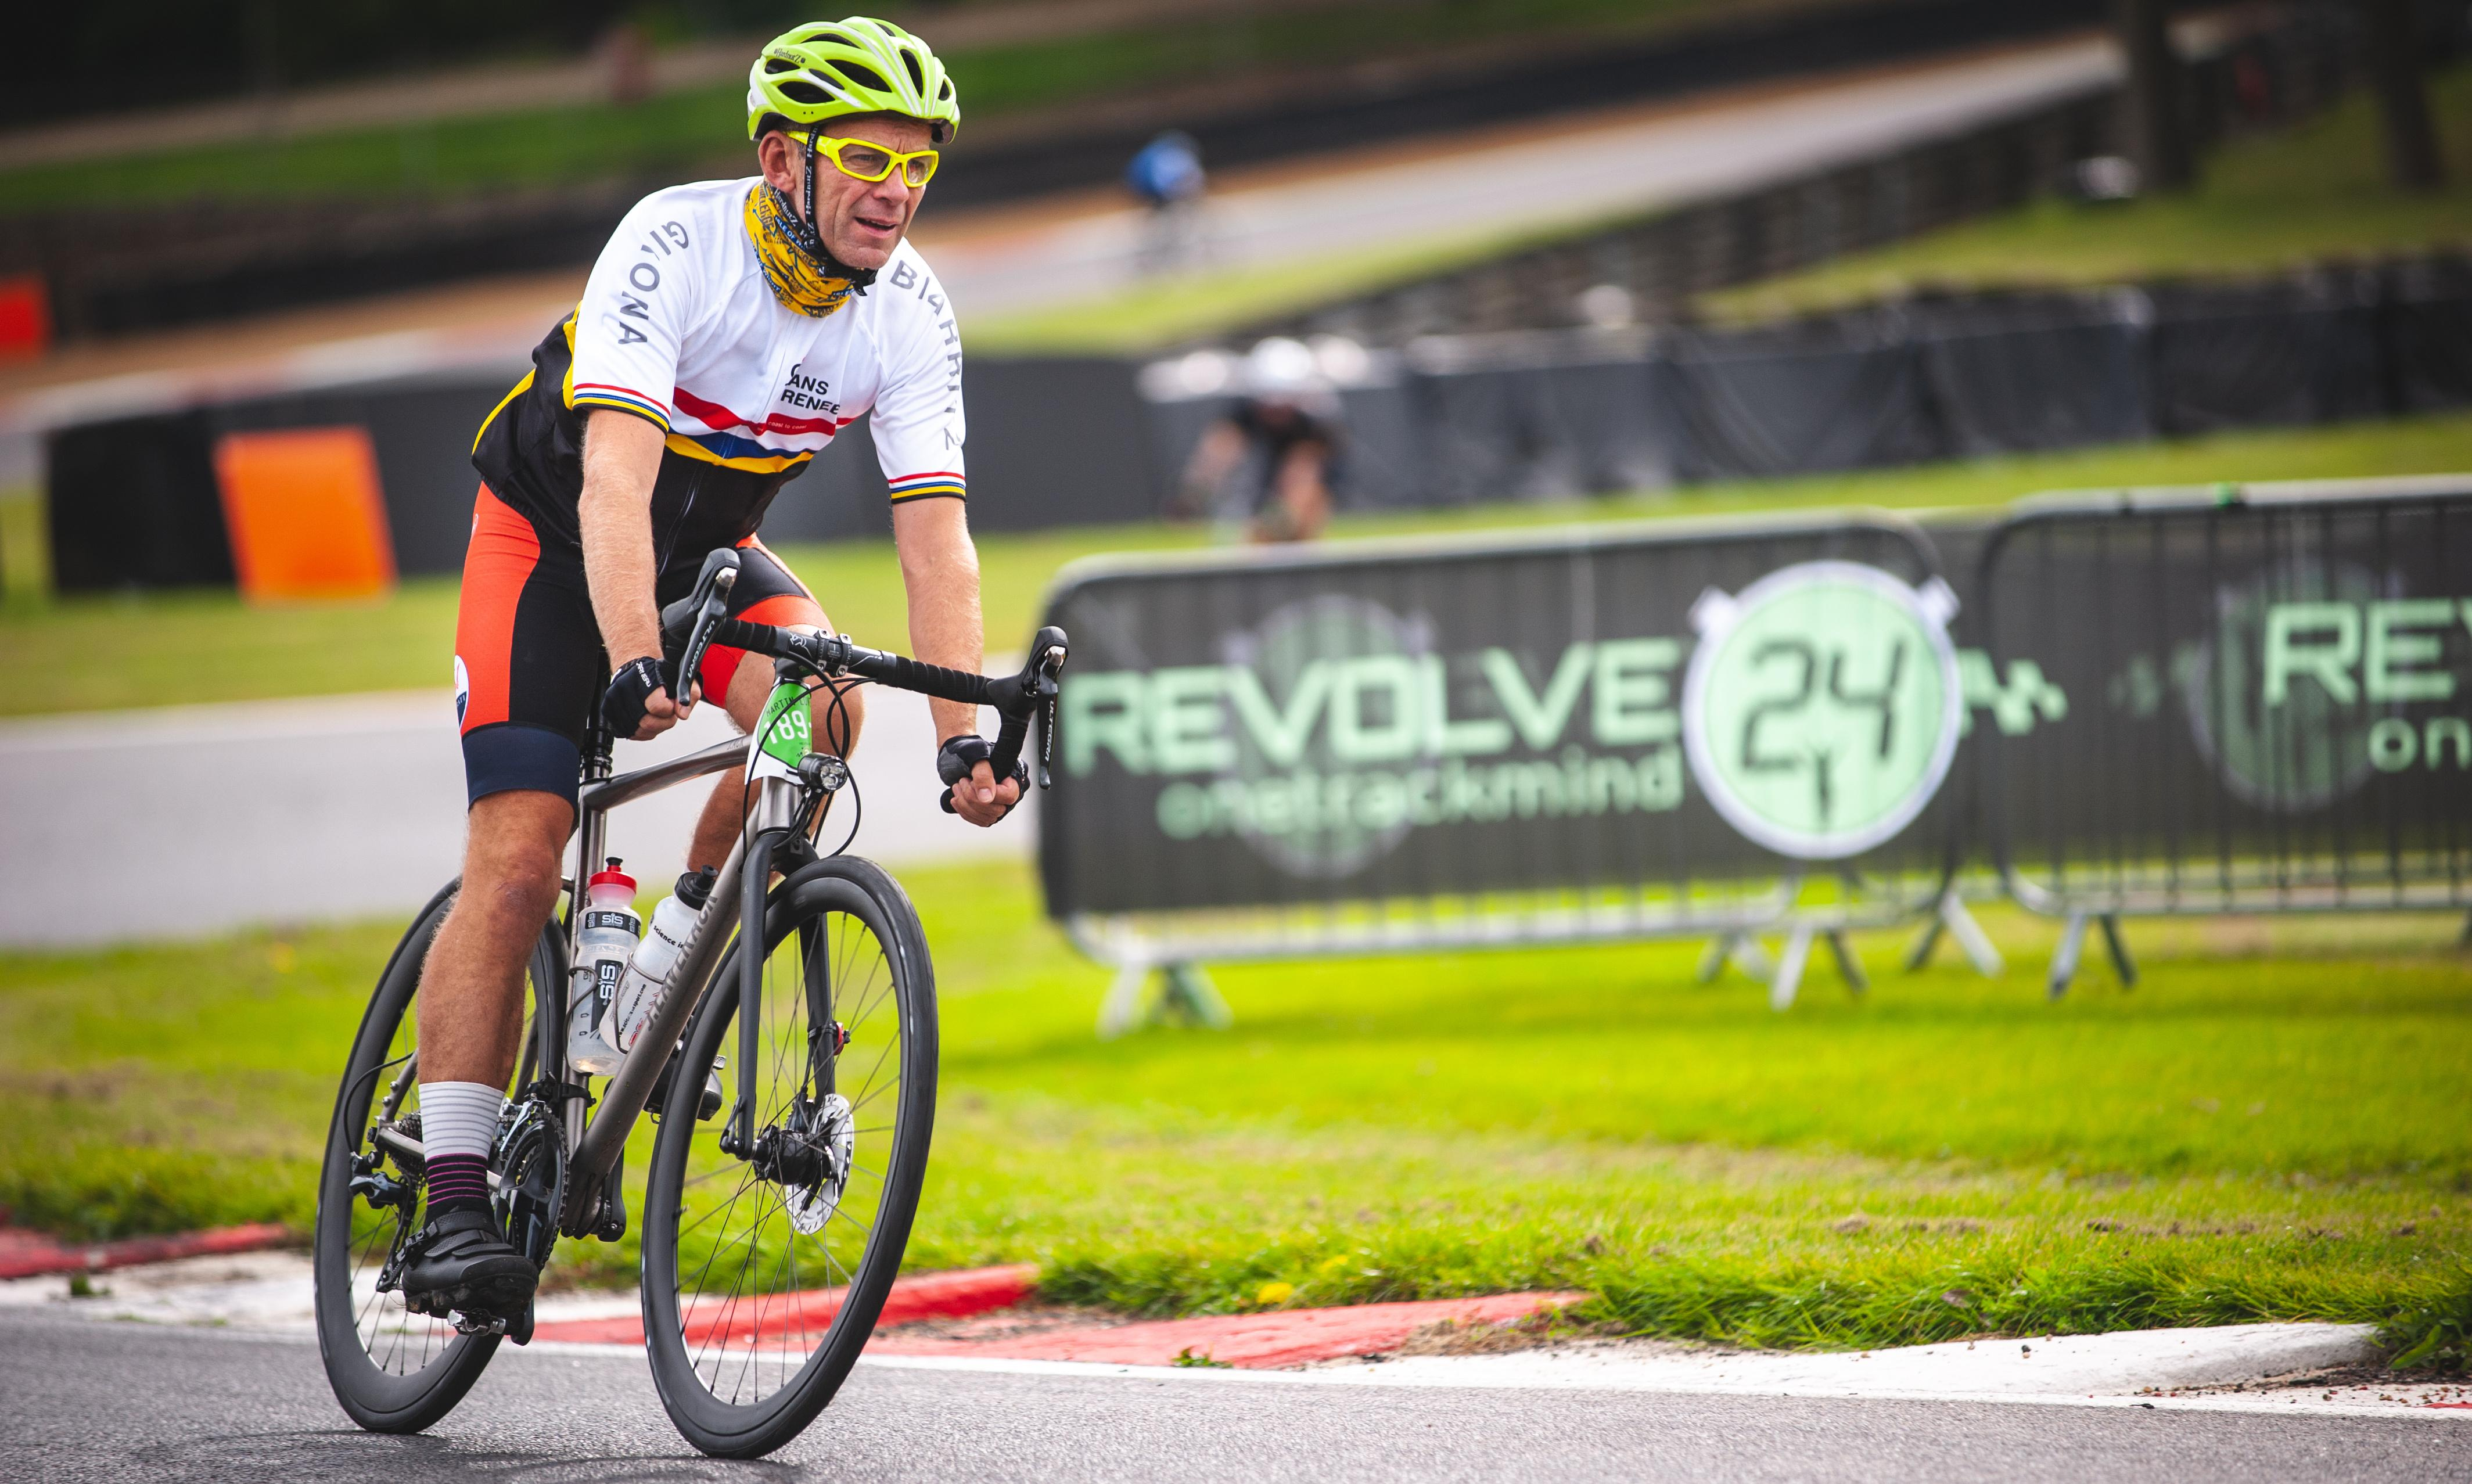 Inside the weird and wonderful world of 24-hour cycle racing